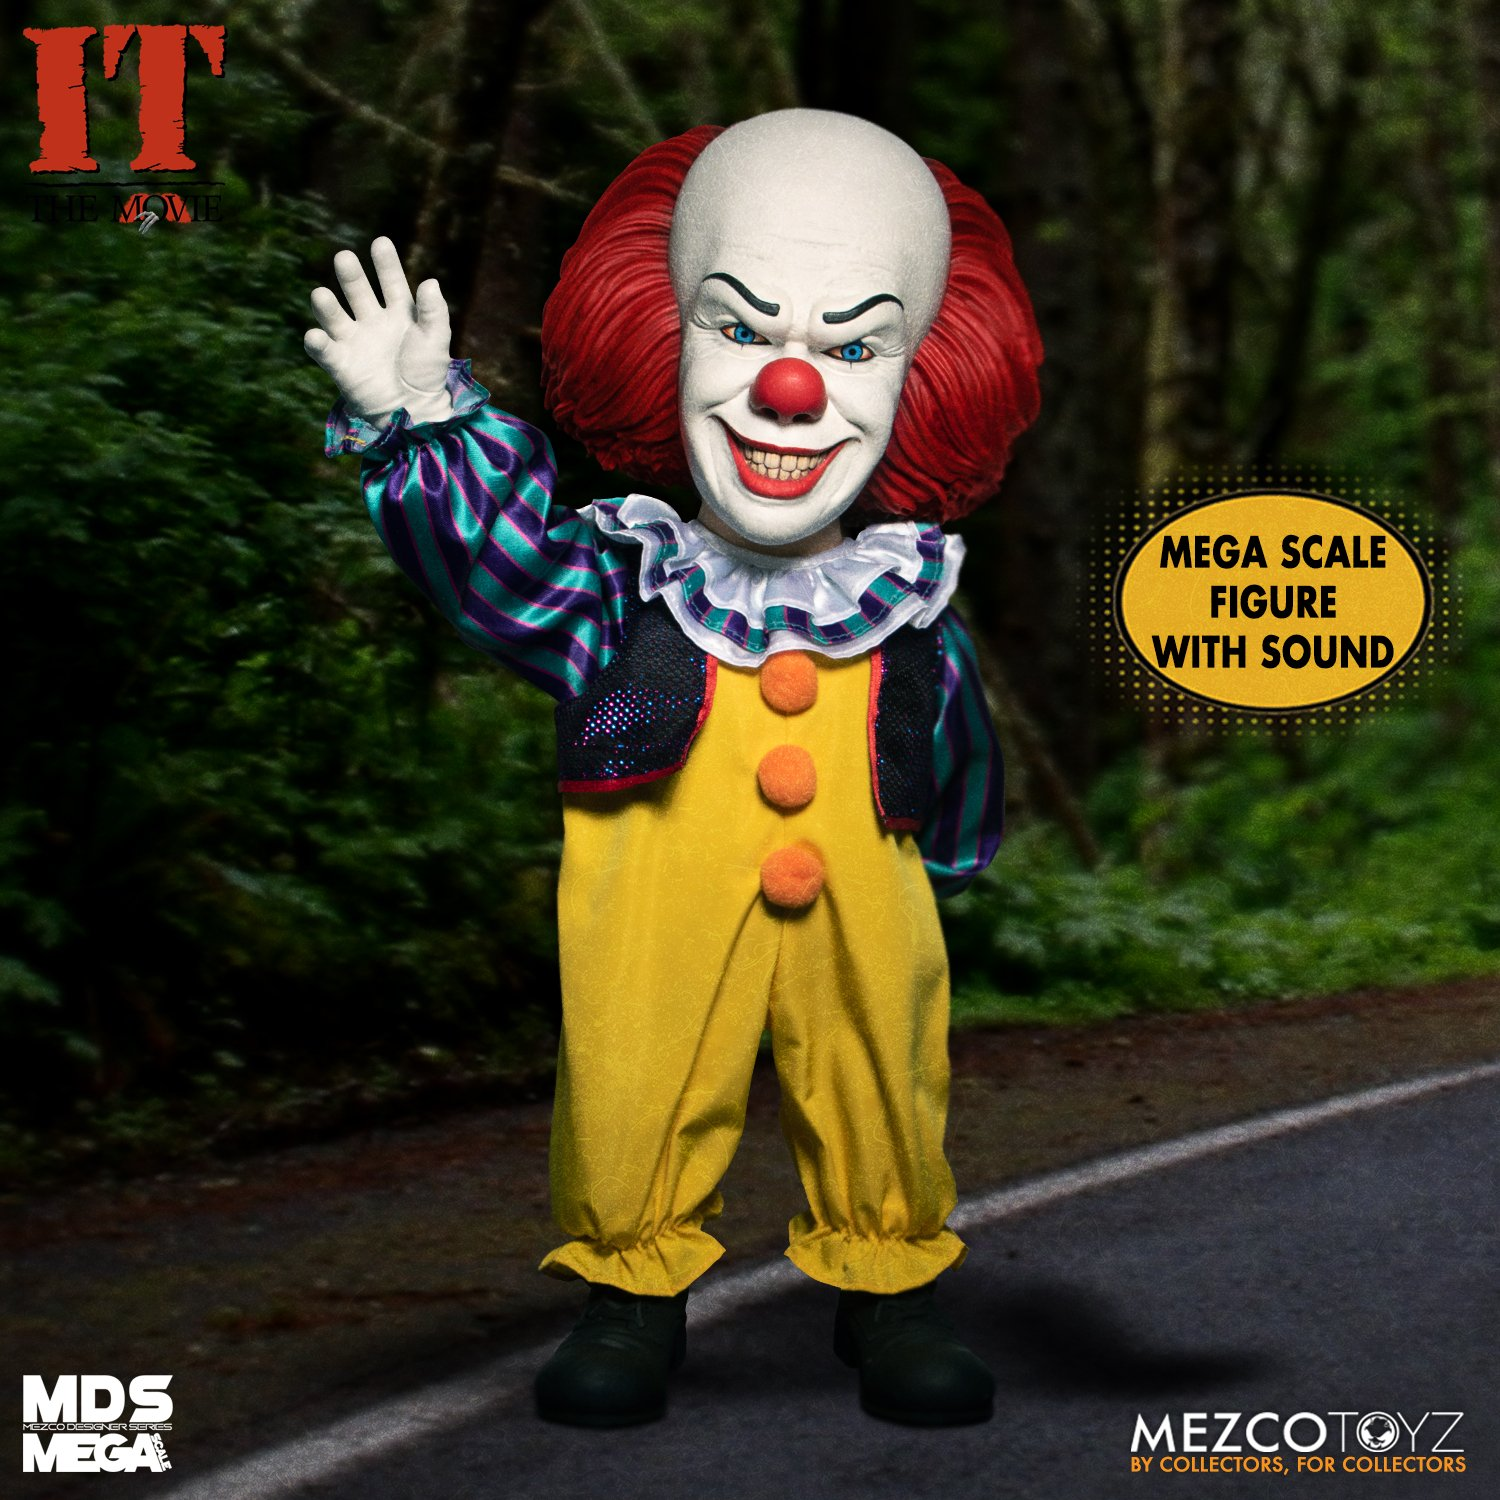 Mezco MDS 1990 Pennywise 002